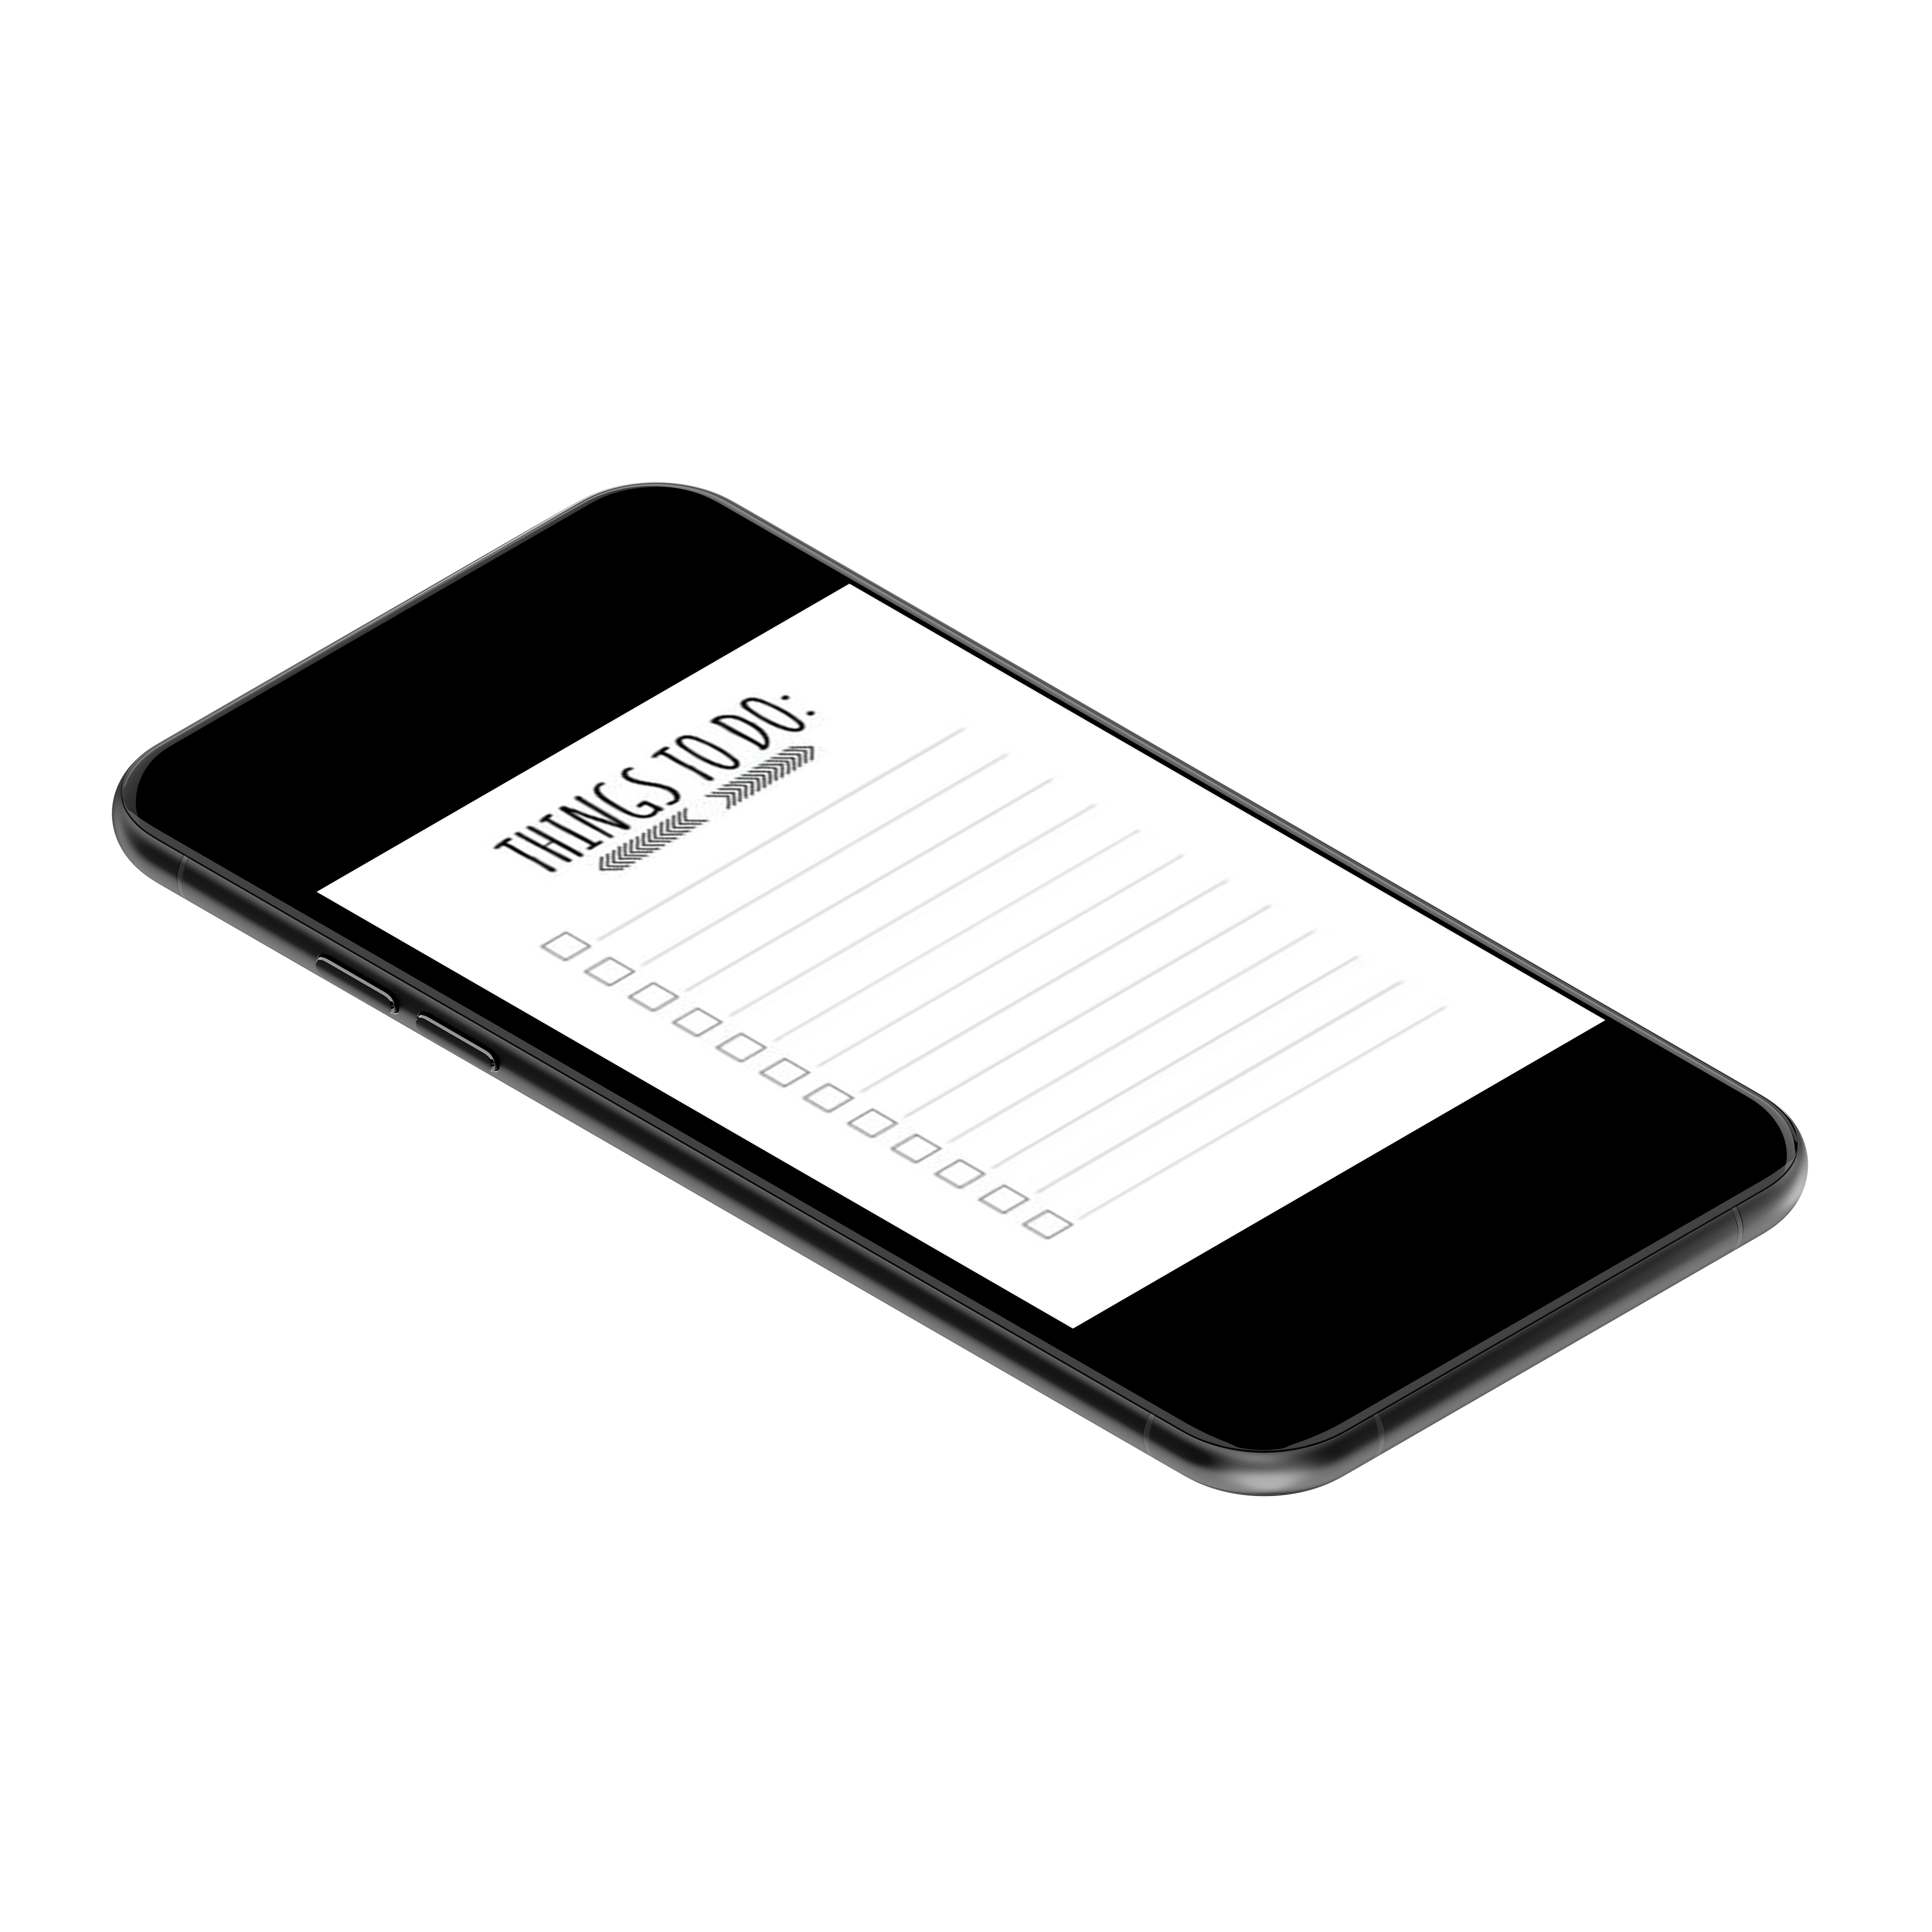 Mobile phone with to do list